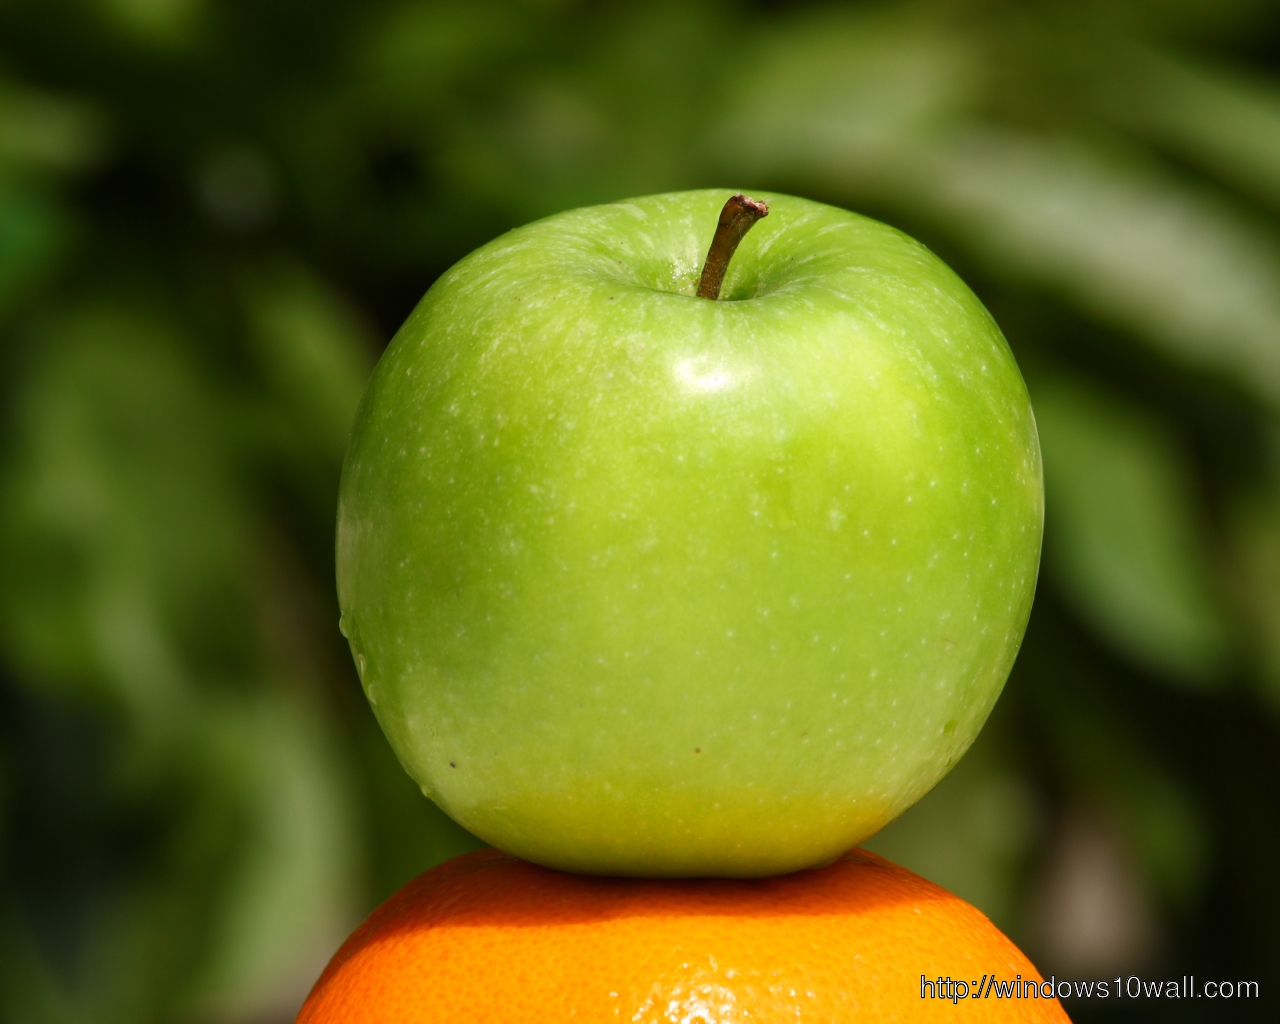 color apple green perfect hd mobile hd wallpaper - Apple Green Color